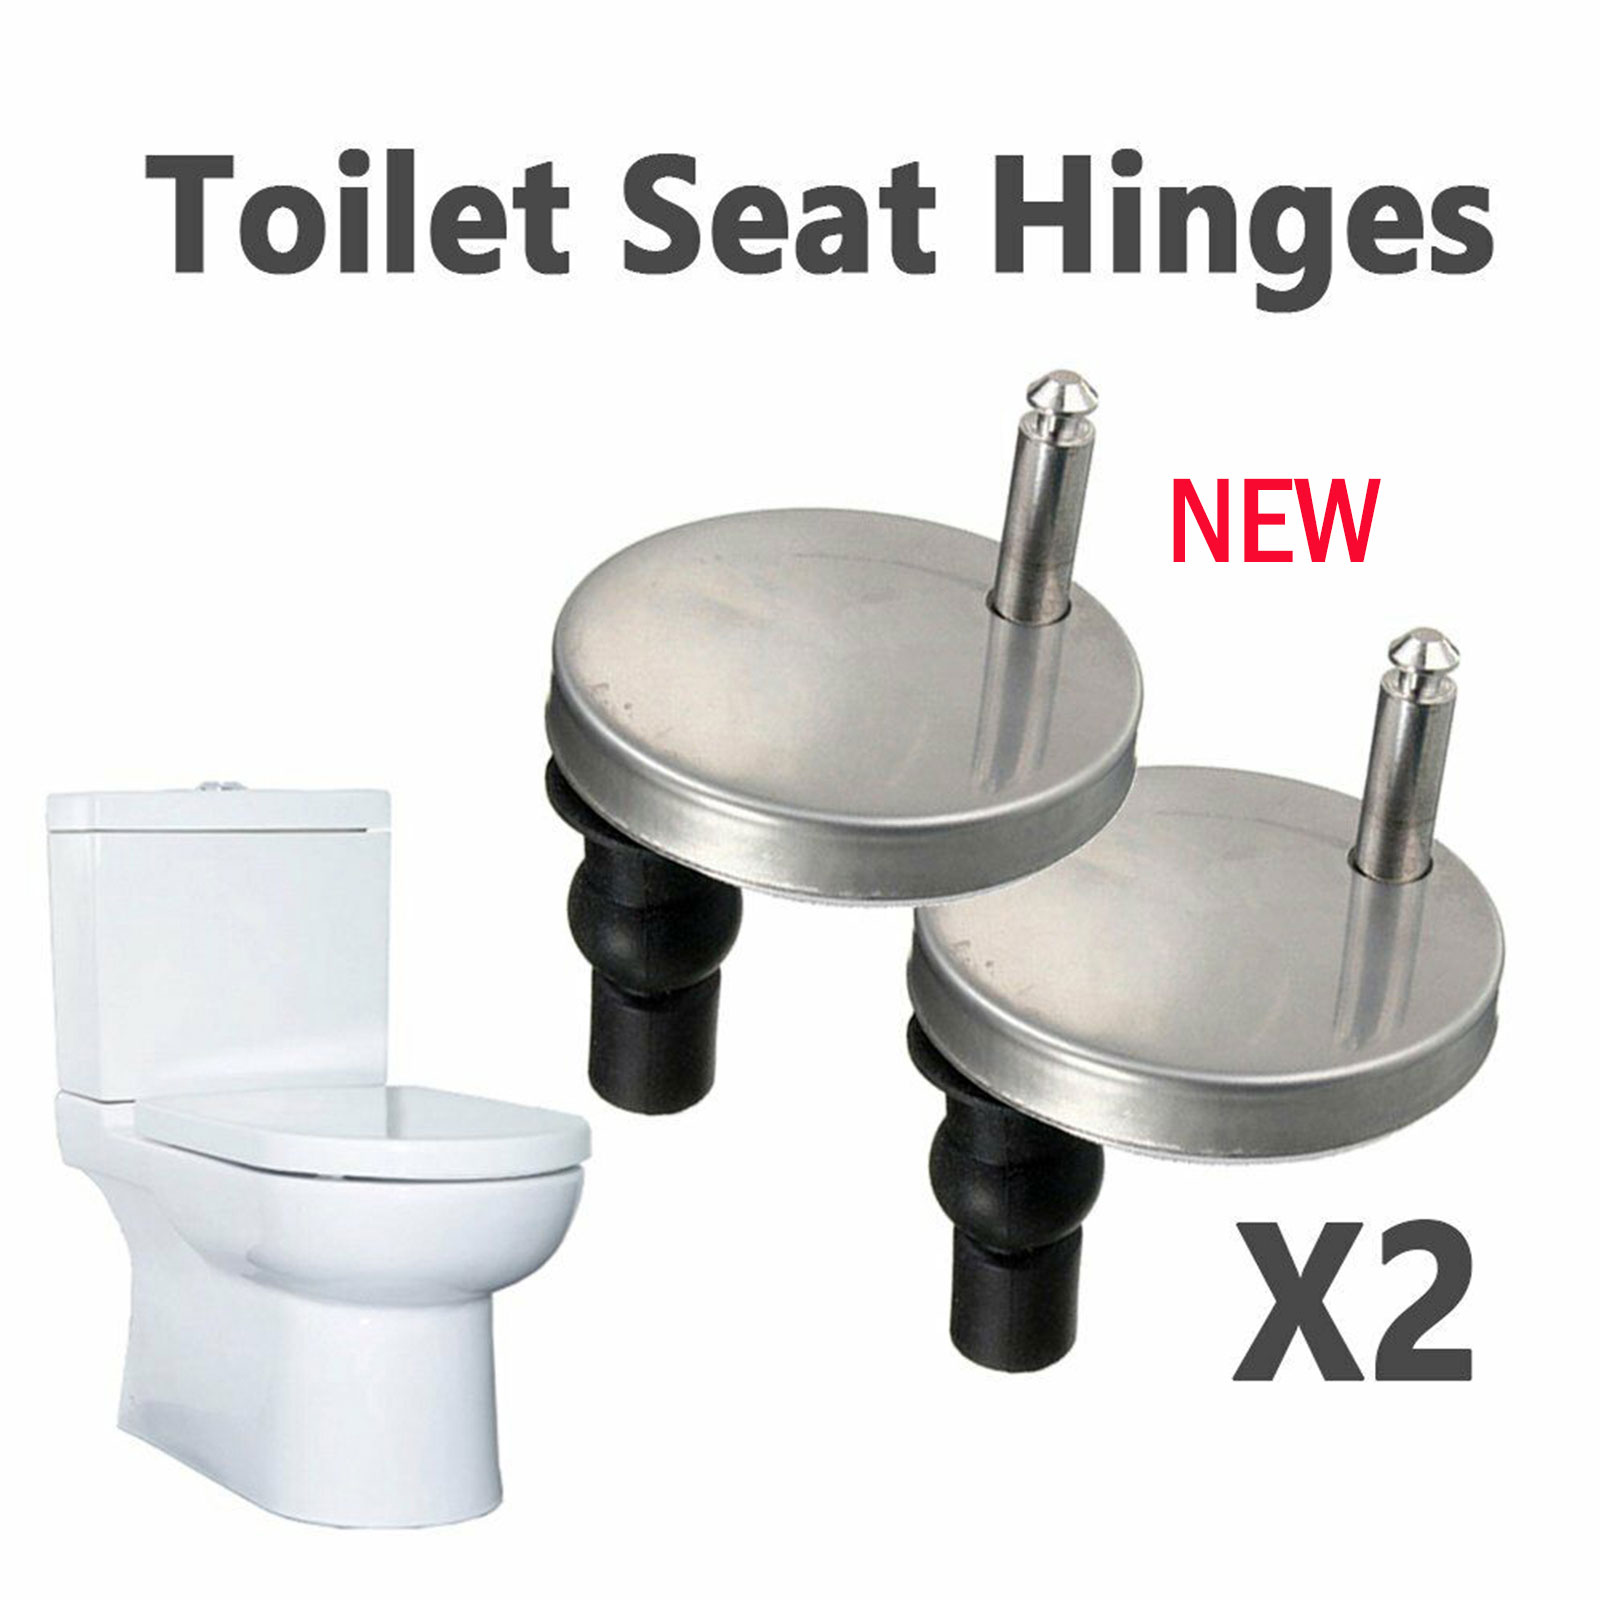 Amazing Details About 2X Quality Top Fix Wc Toilet Seat Hinge Fitting Quick Release Hinges Uk Ship Machost Co Dining Chair Design Ideas Machostcouk